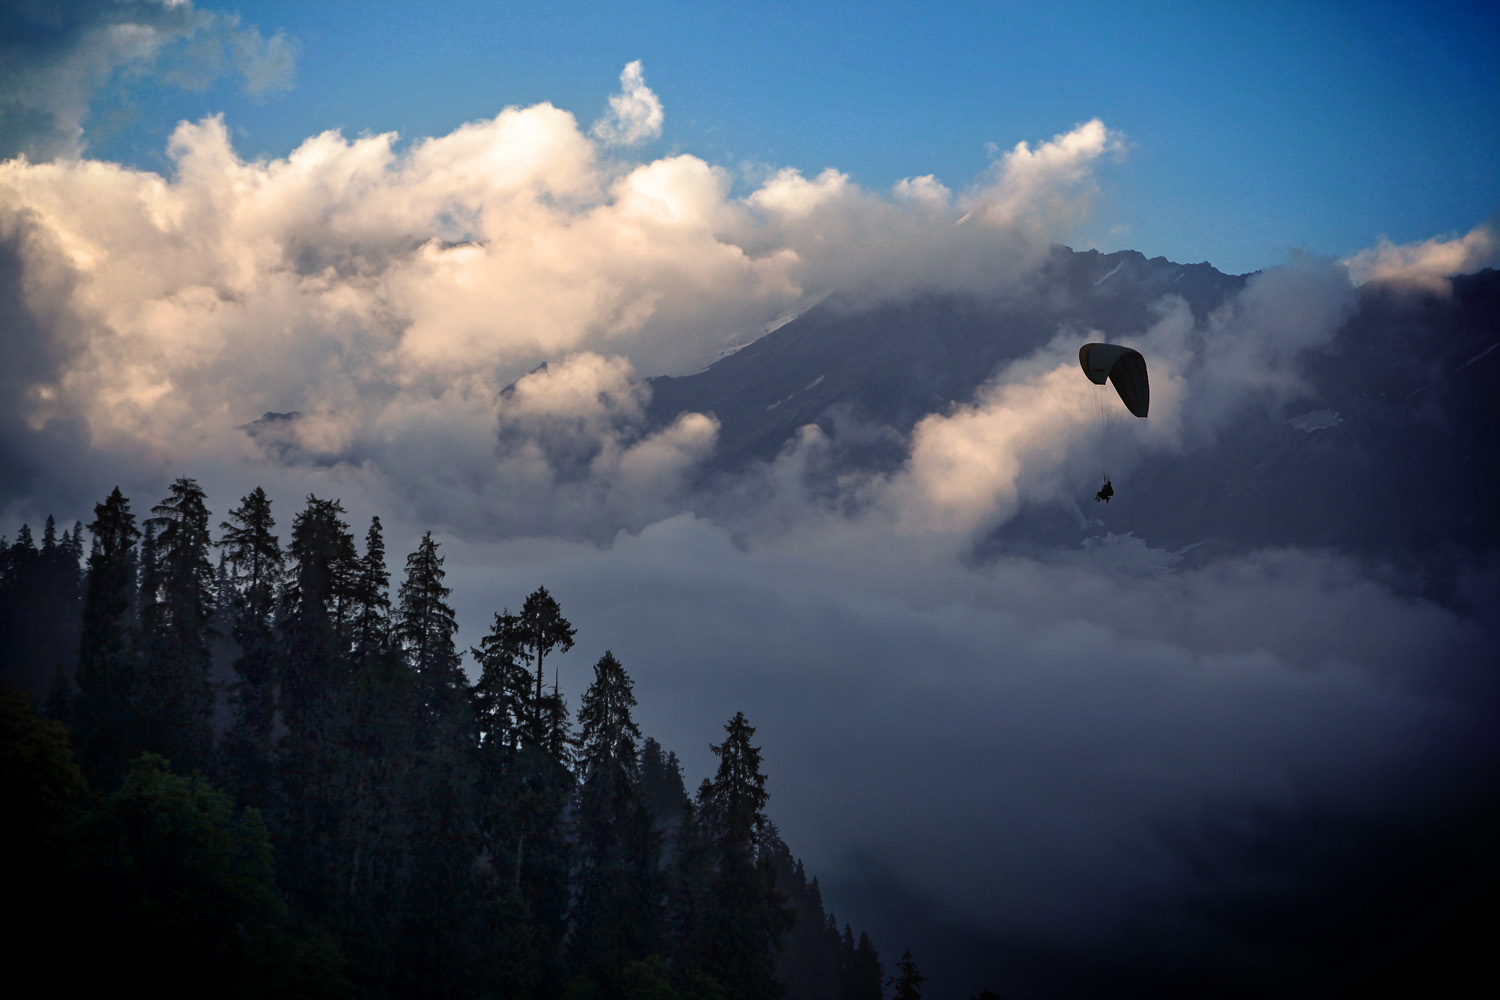 Paragliding Solang Valley, Himachal Pradesh, India